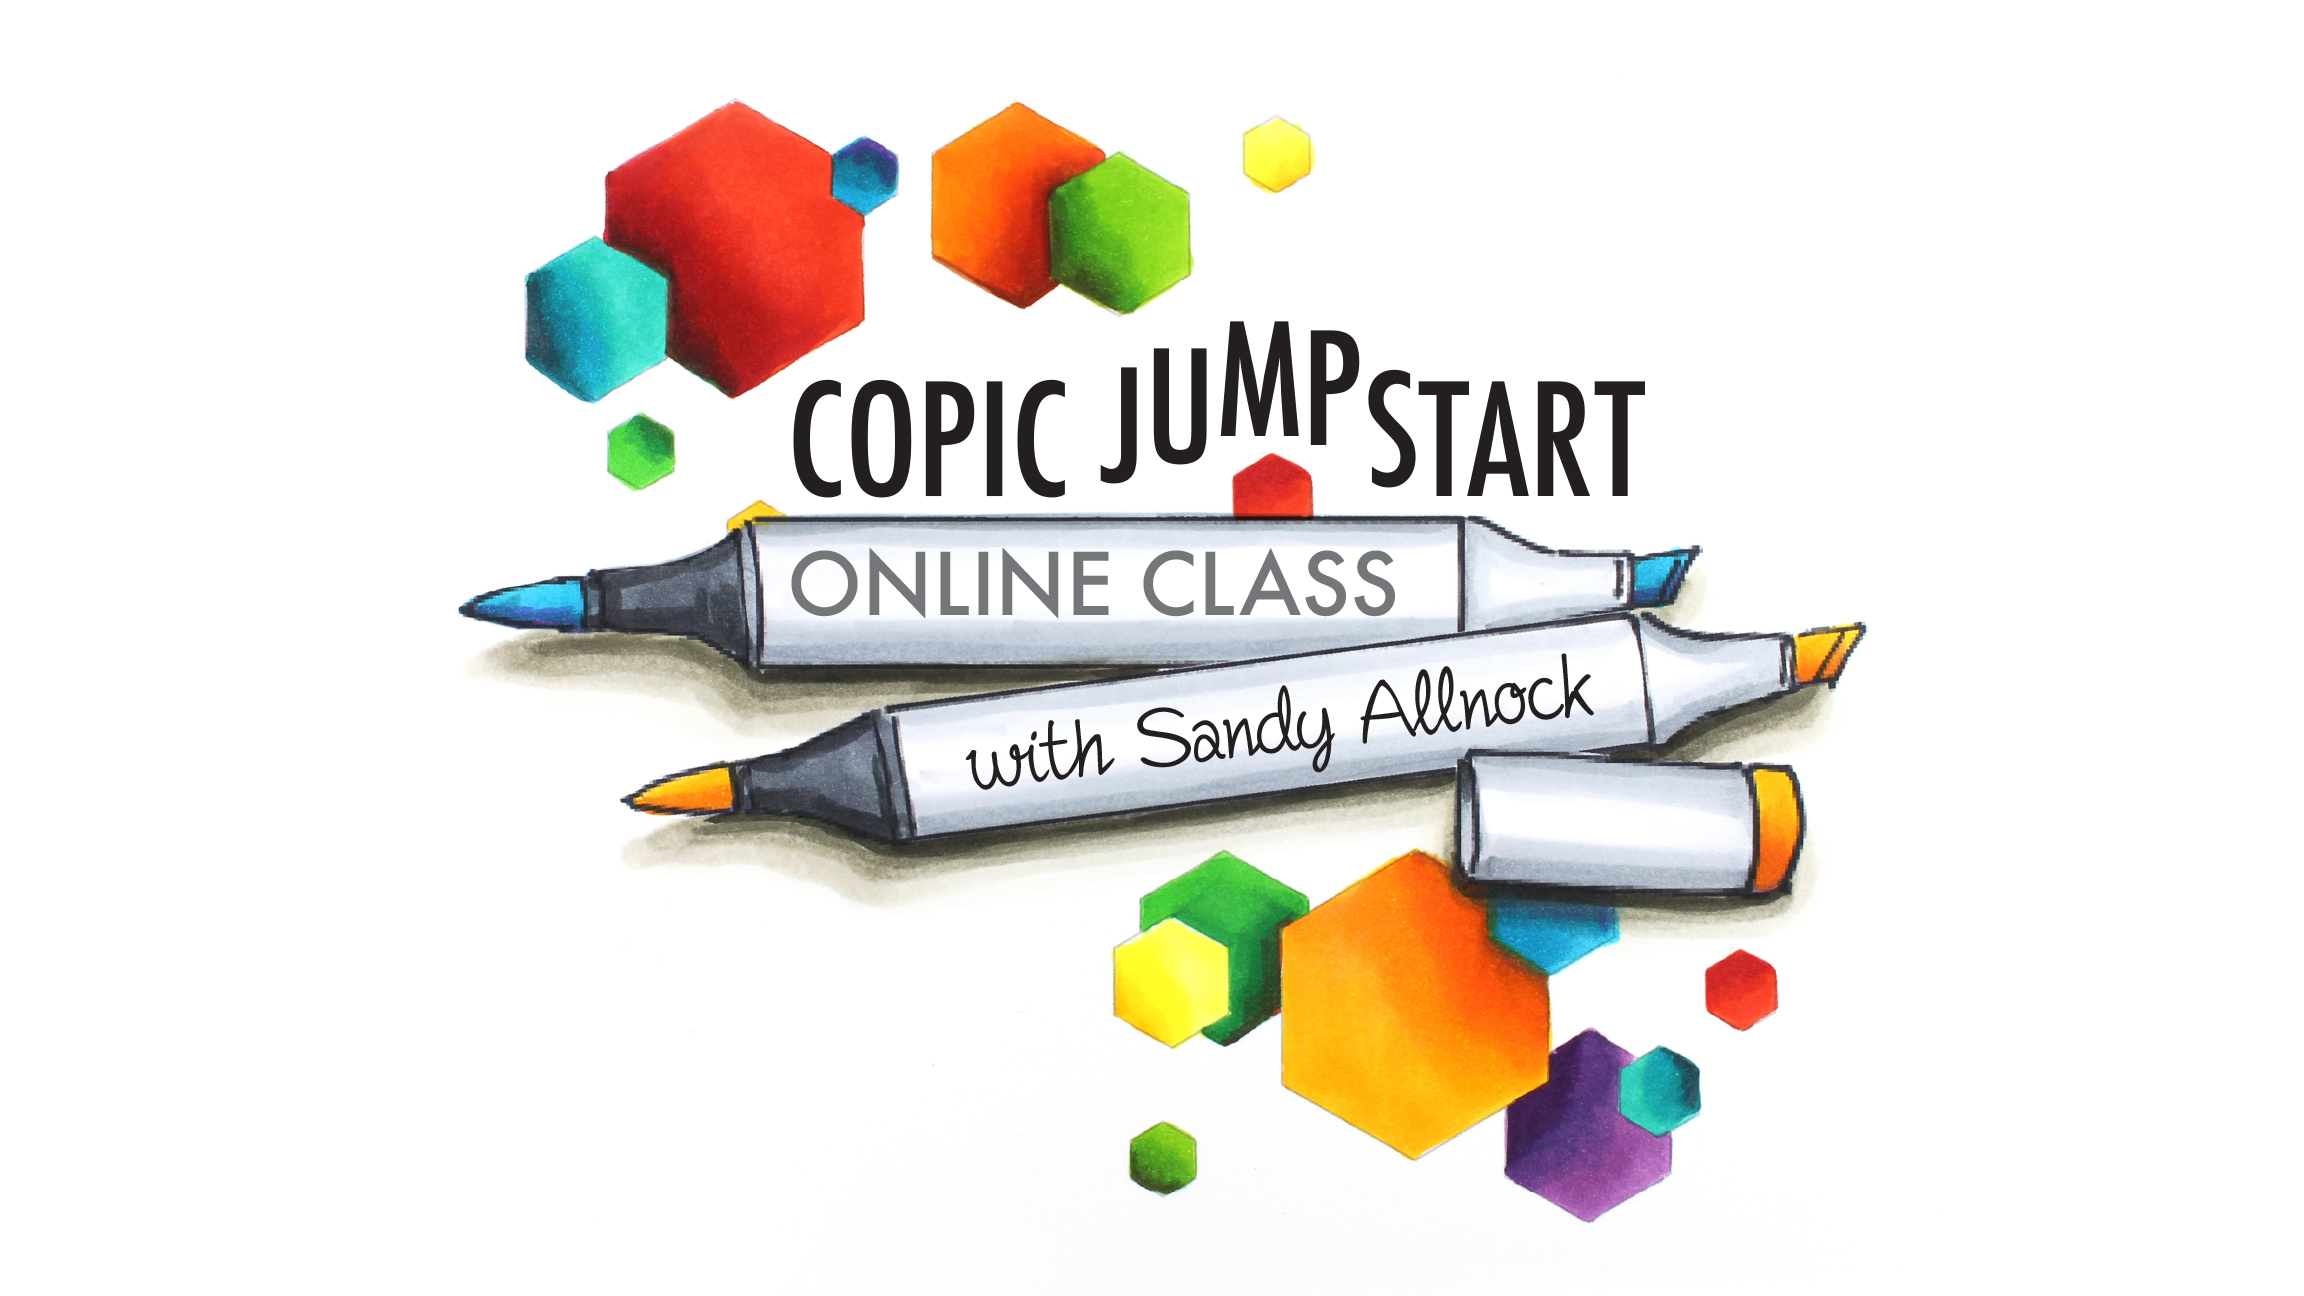 Copic Jumpstart: Online Copic Class coming May 27, 2016!